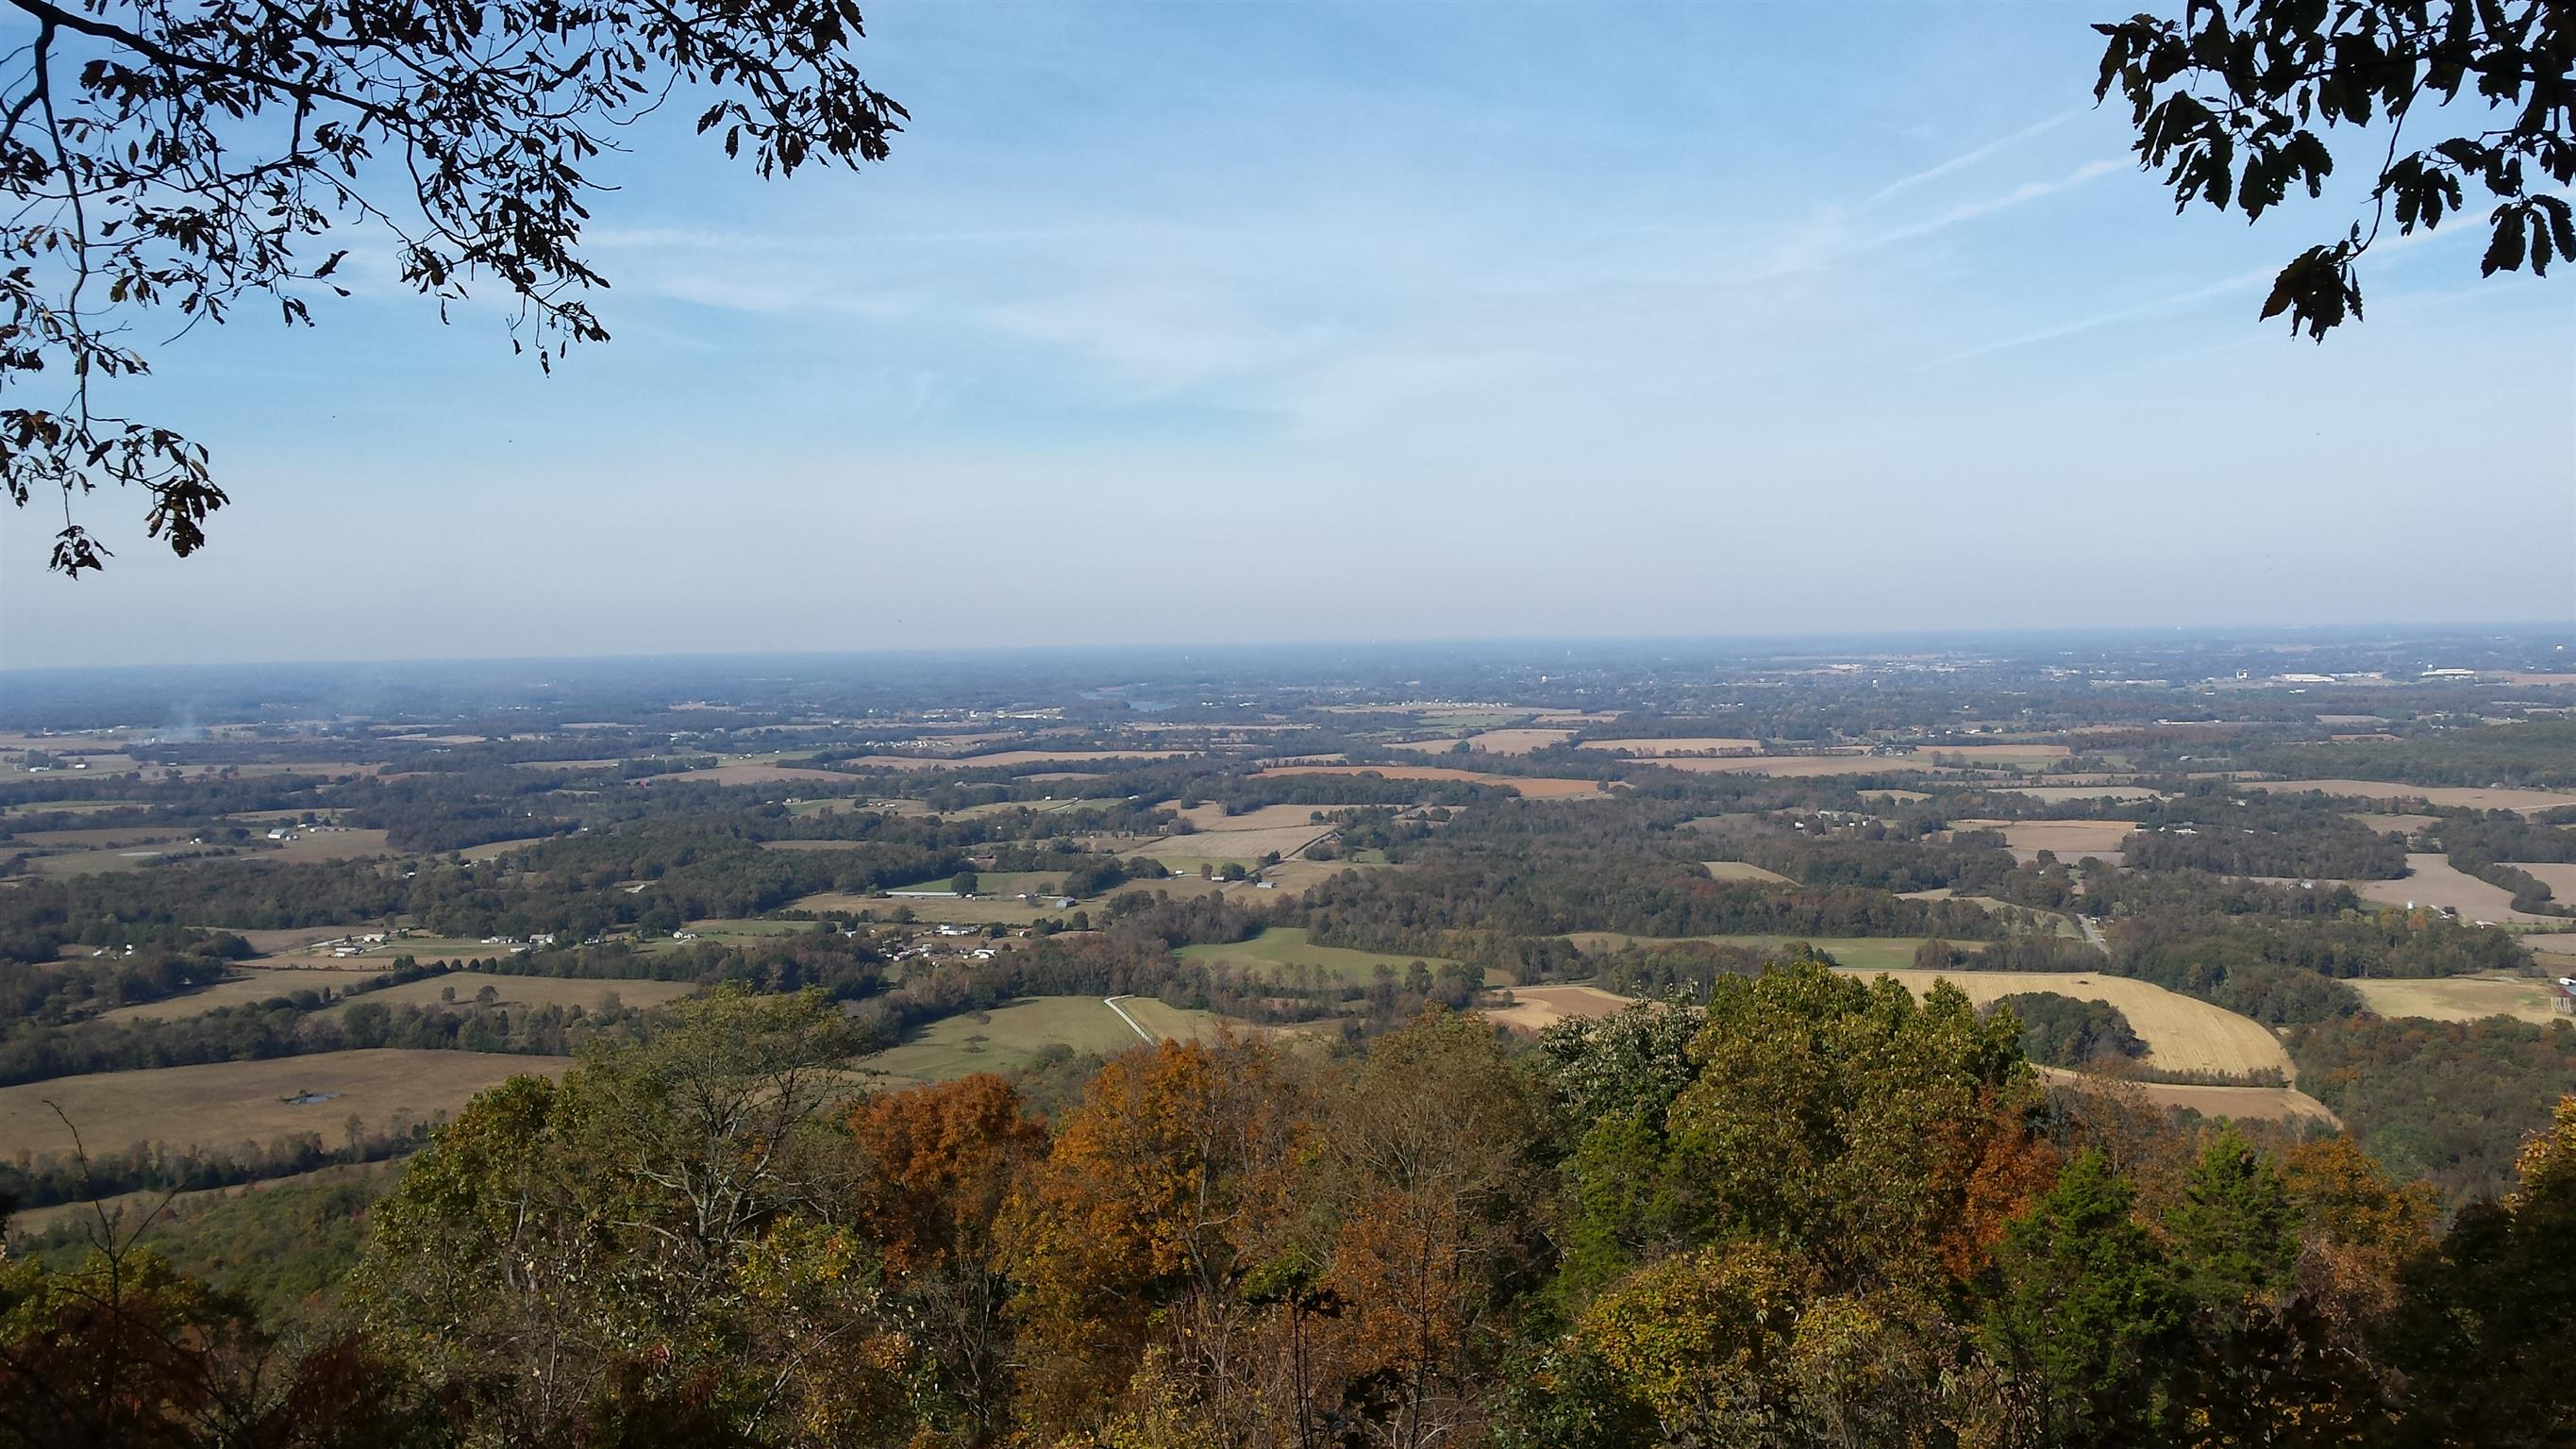 0 Long Point Ln, Belvidere, TN 37306 - Belvidere, TN real estate listing